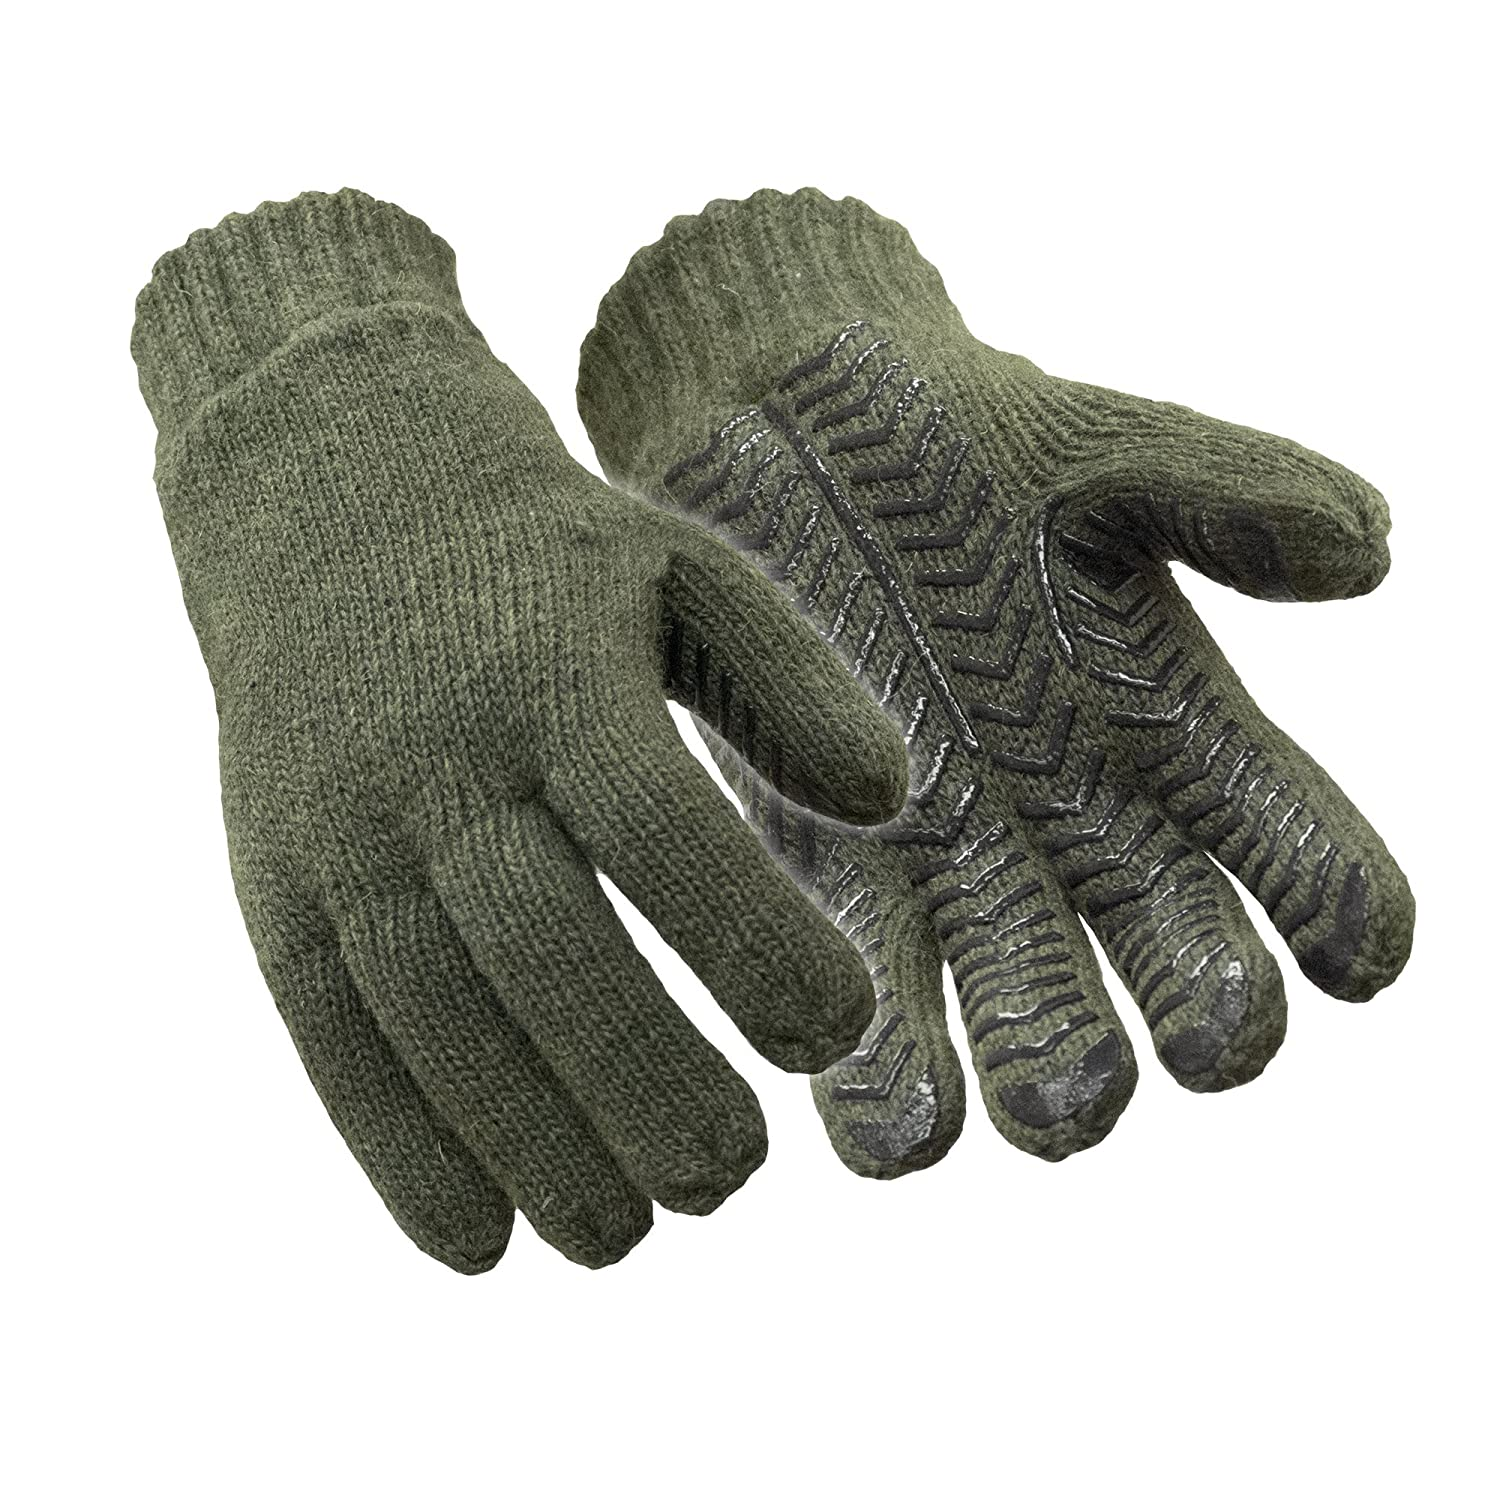 RefrigiWear Thinsulate Insulated Fleece Lined 100% Ragg Wool Grip Gloves, Green